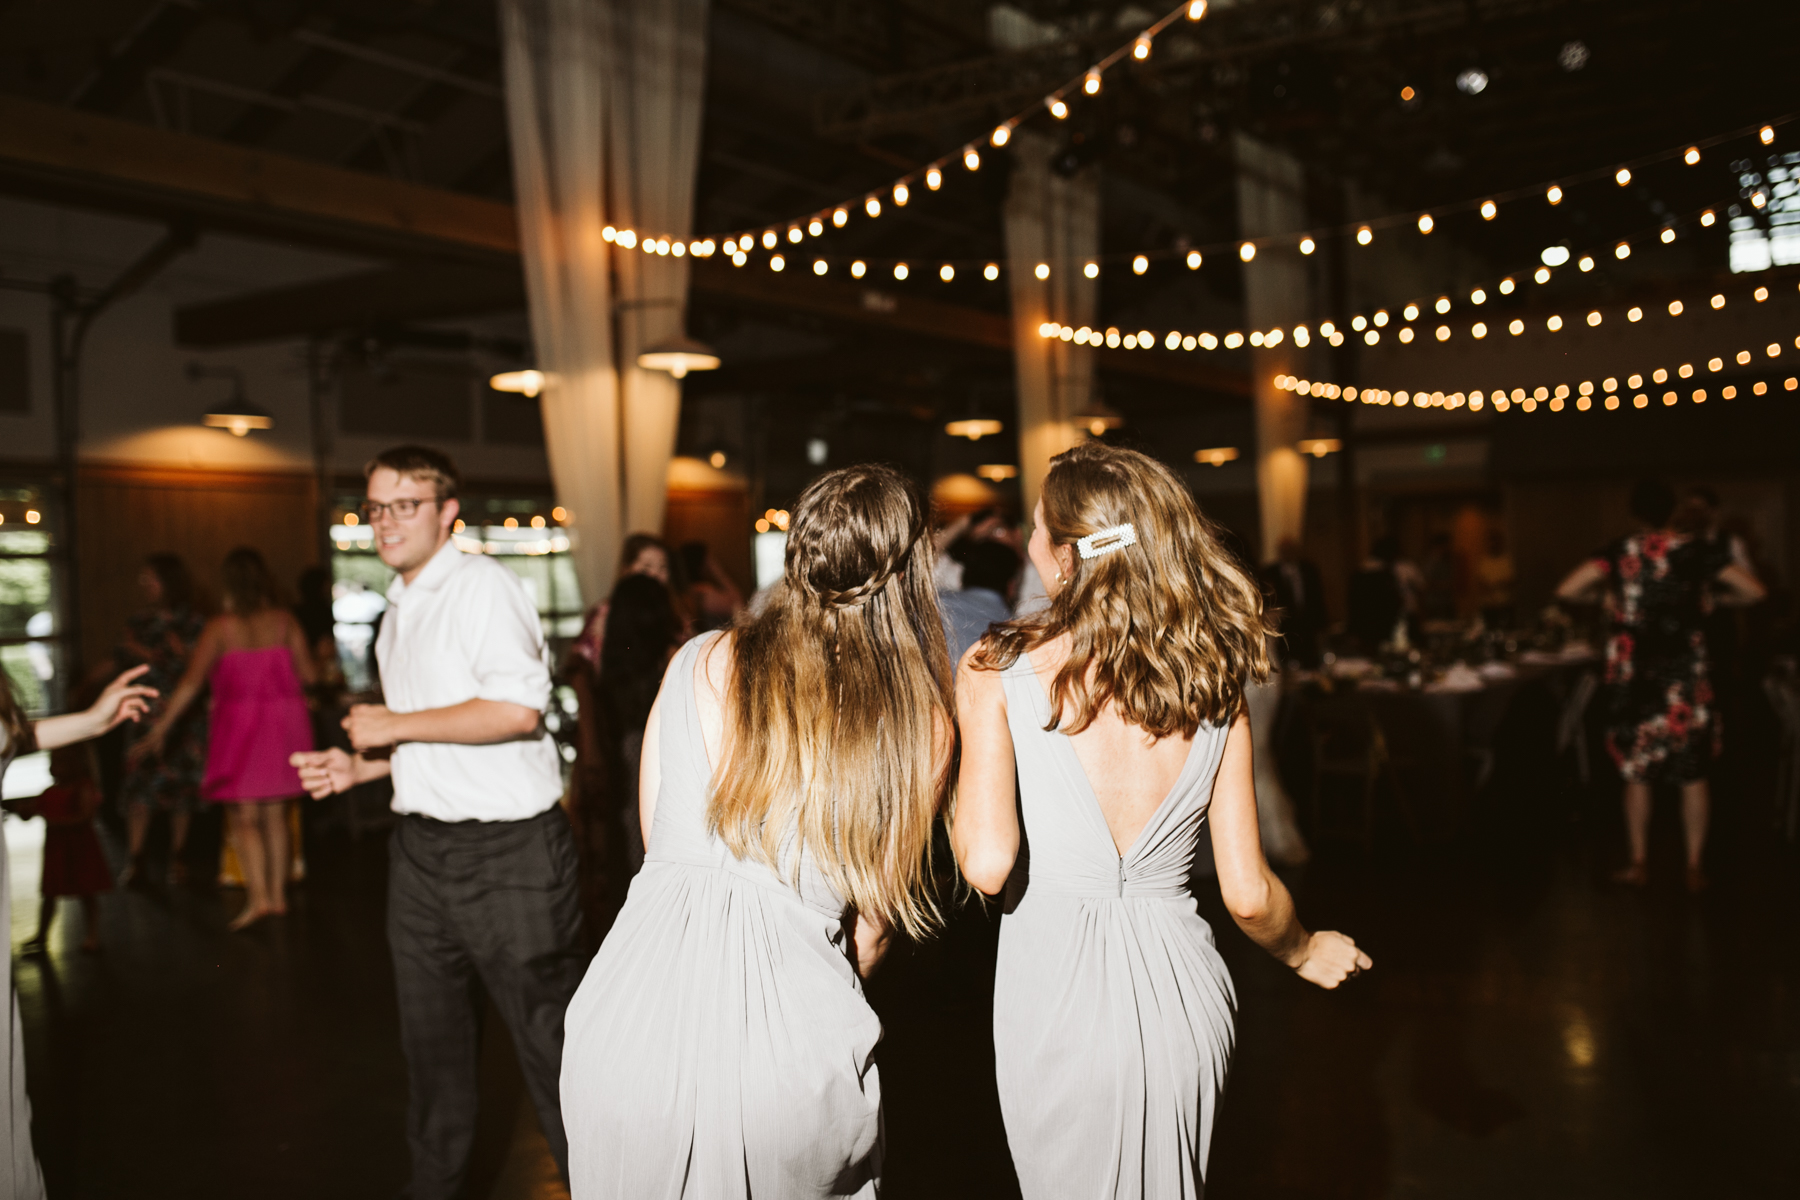 Wedding reception at the loveless cafe and barn in nashville, tennessee